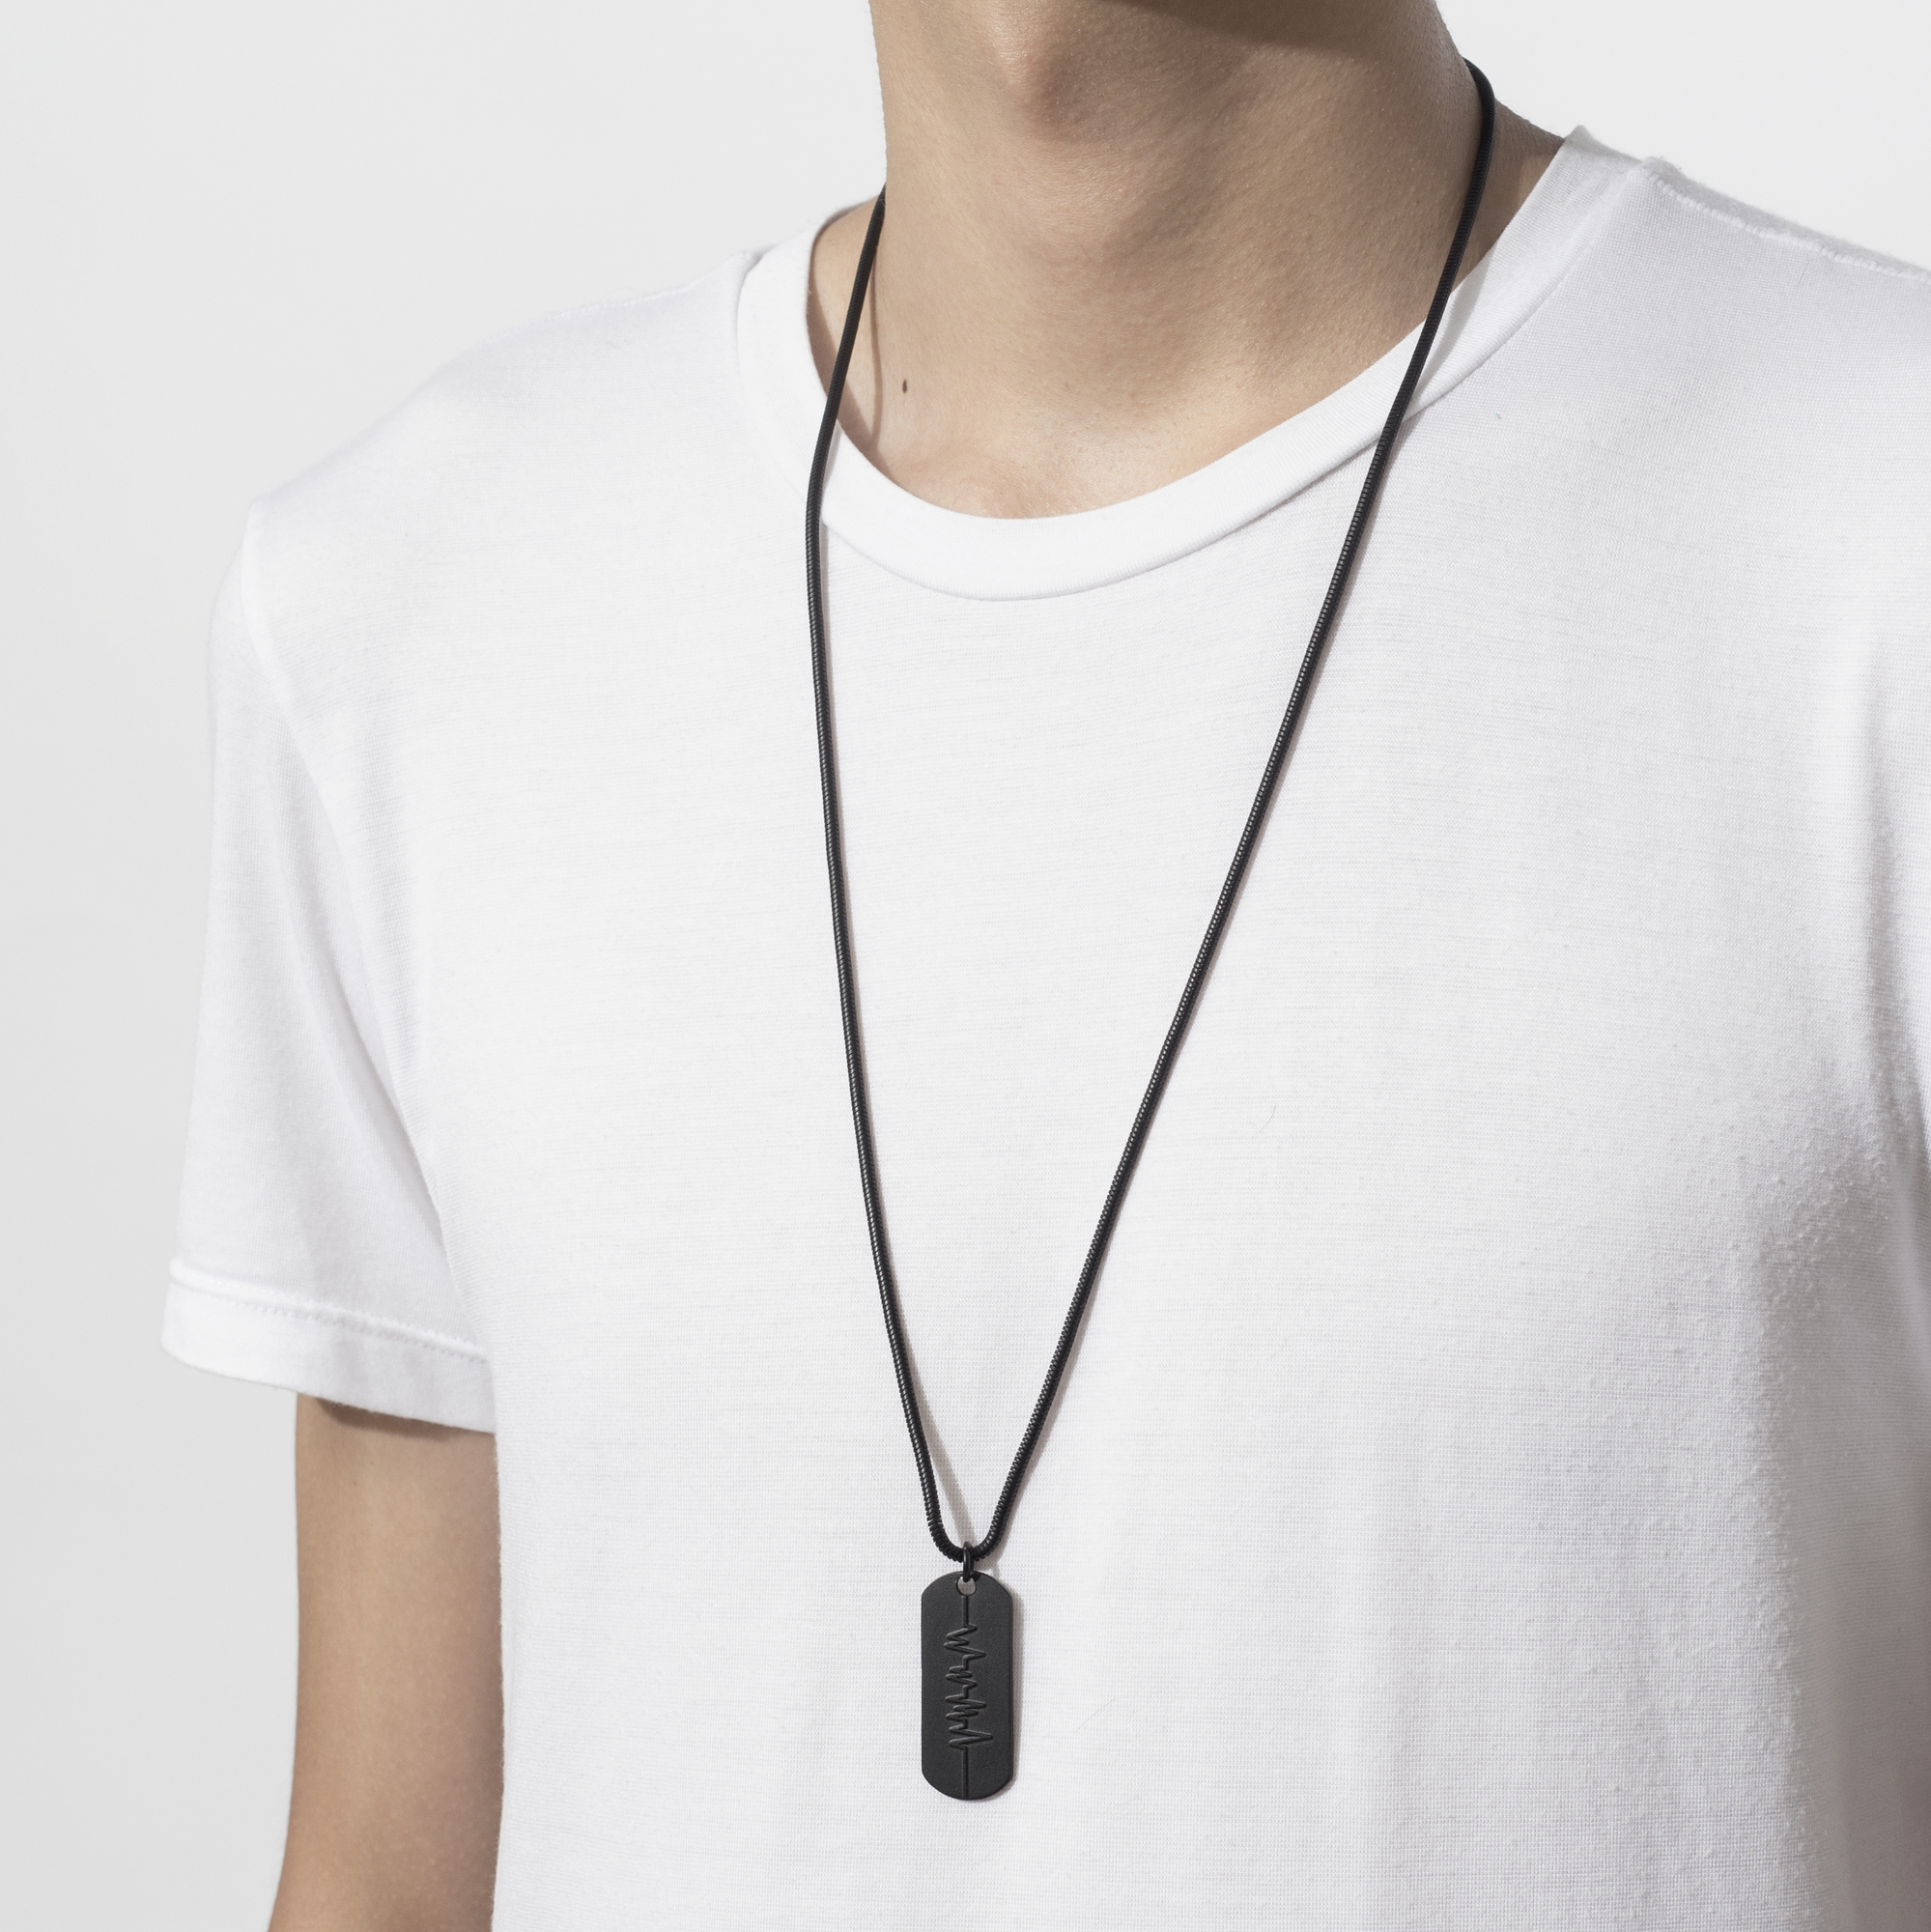 necklace ecg spacelabs product a leads snap